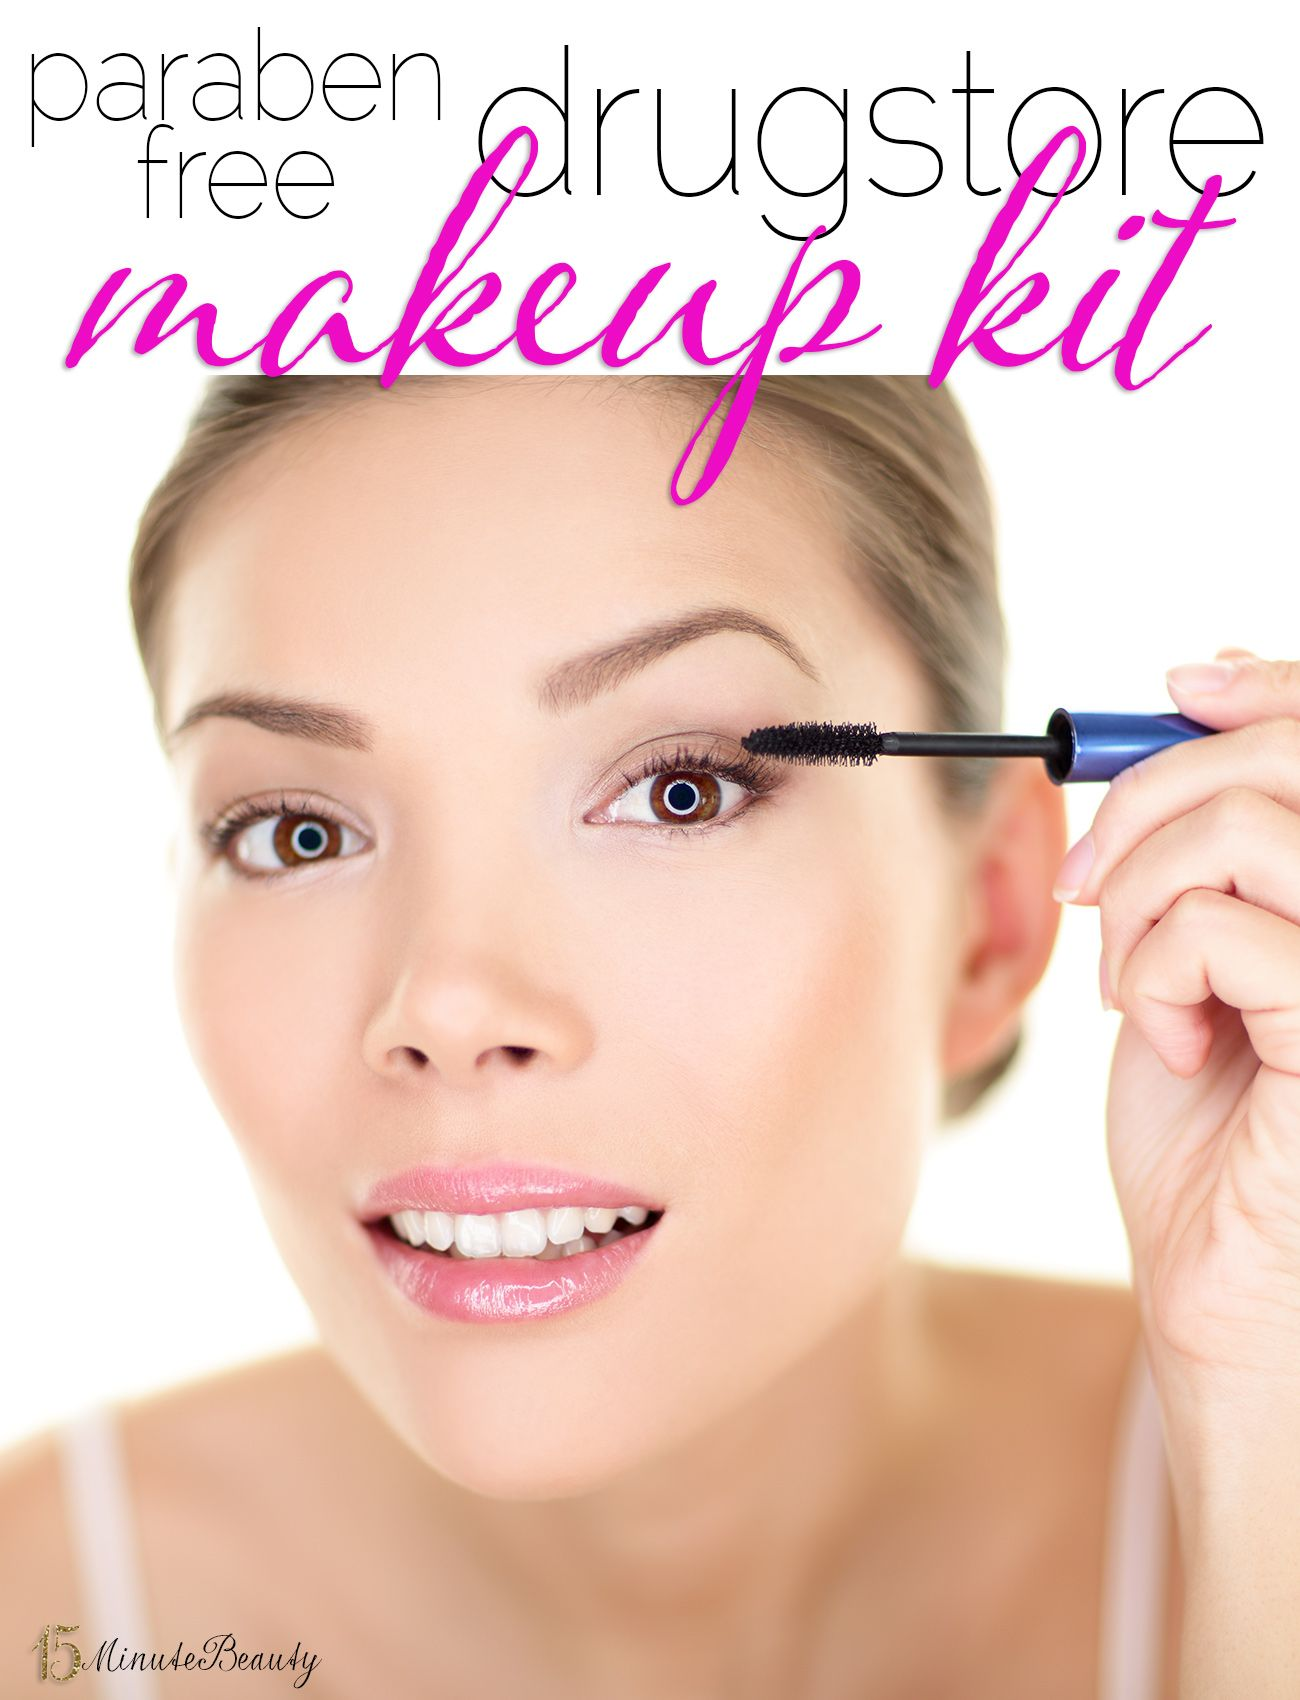 Paraben Free Drugstore Makeup Kit Yes, It Is Possible